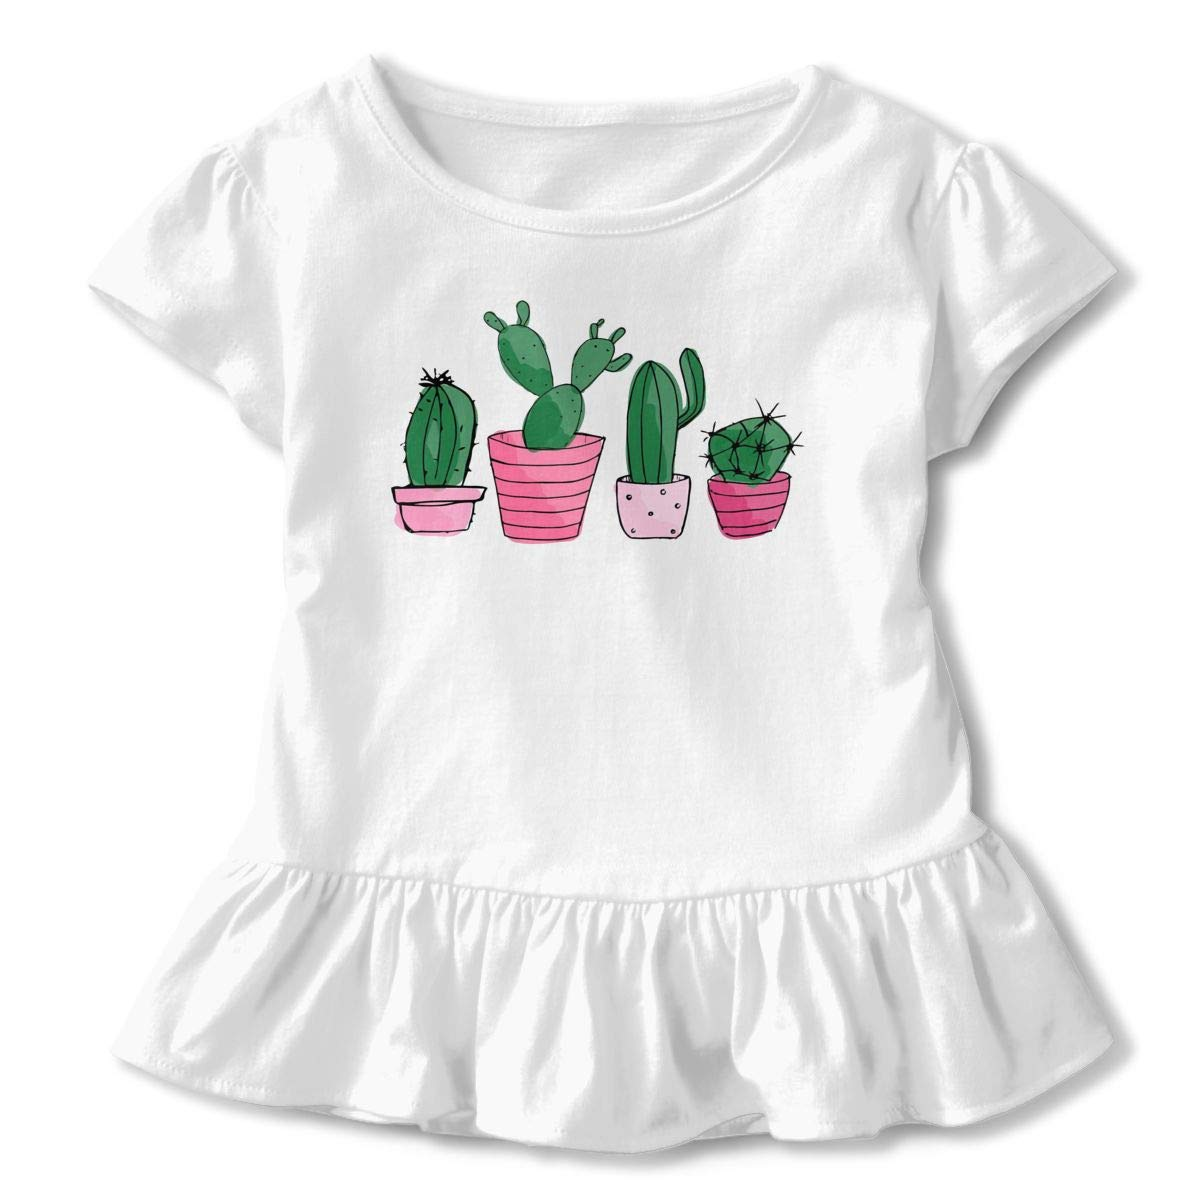 Cacti Cactus Toddler Baby Girls Cotton Ruffle Short Sleeve Top Soft T-Shirt 2-6T